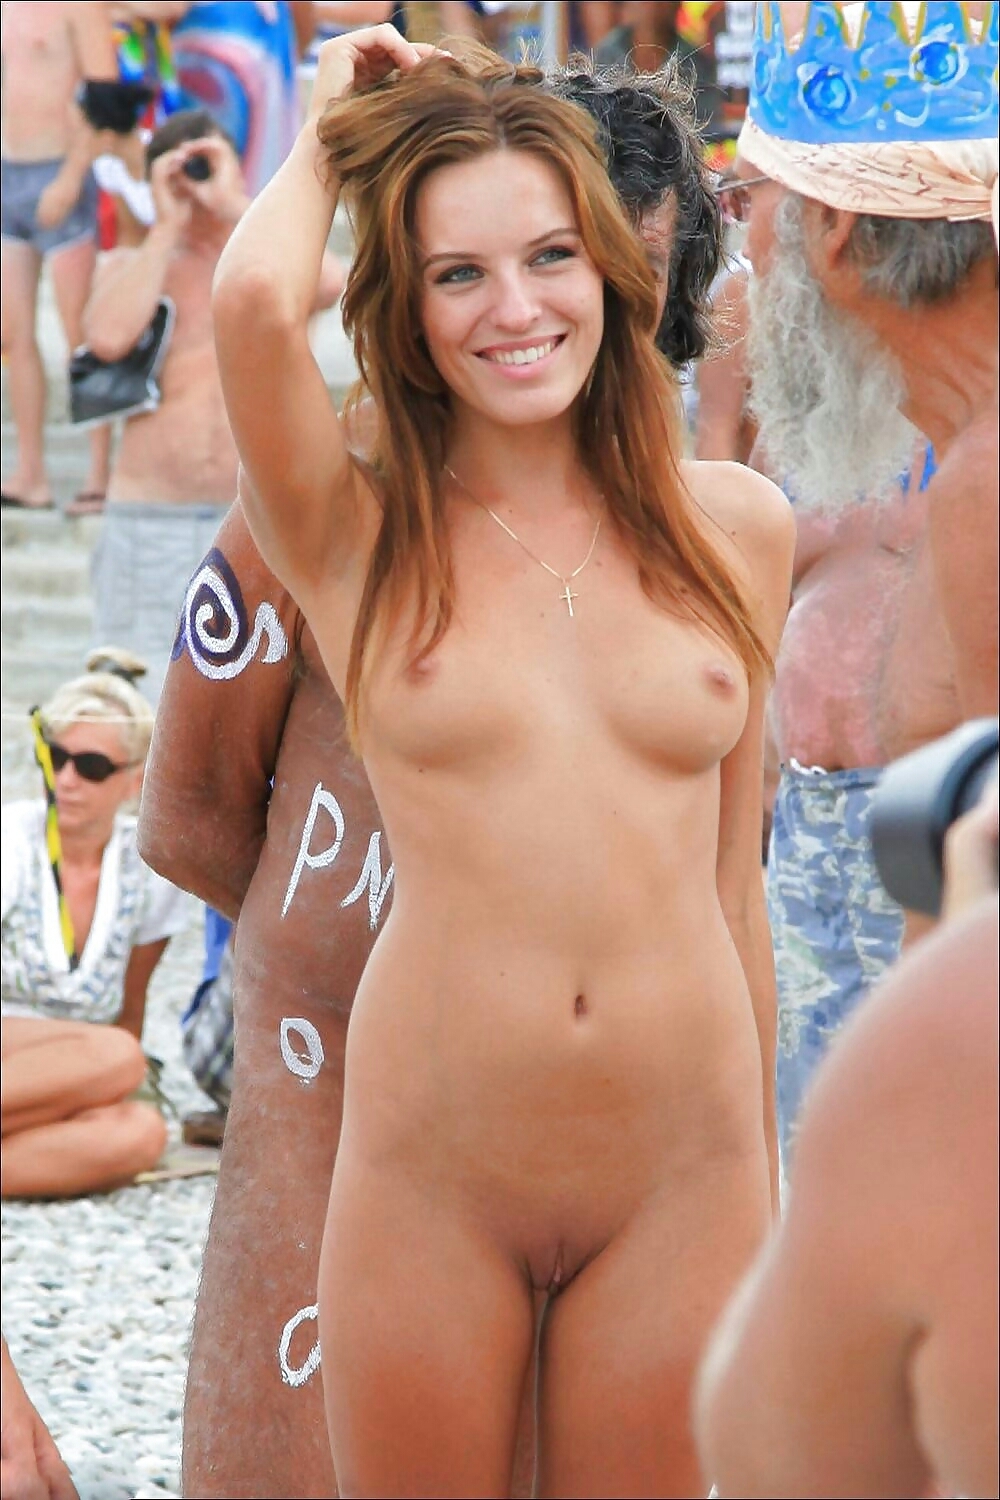 Naked women beach parties remarkable